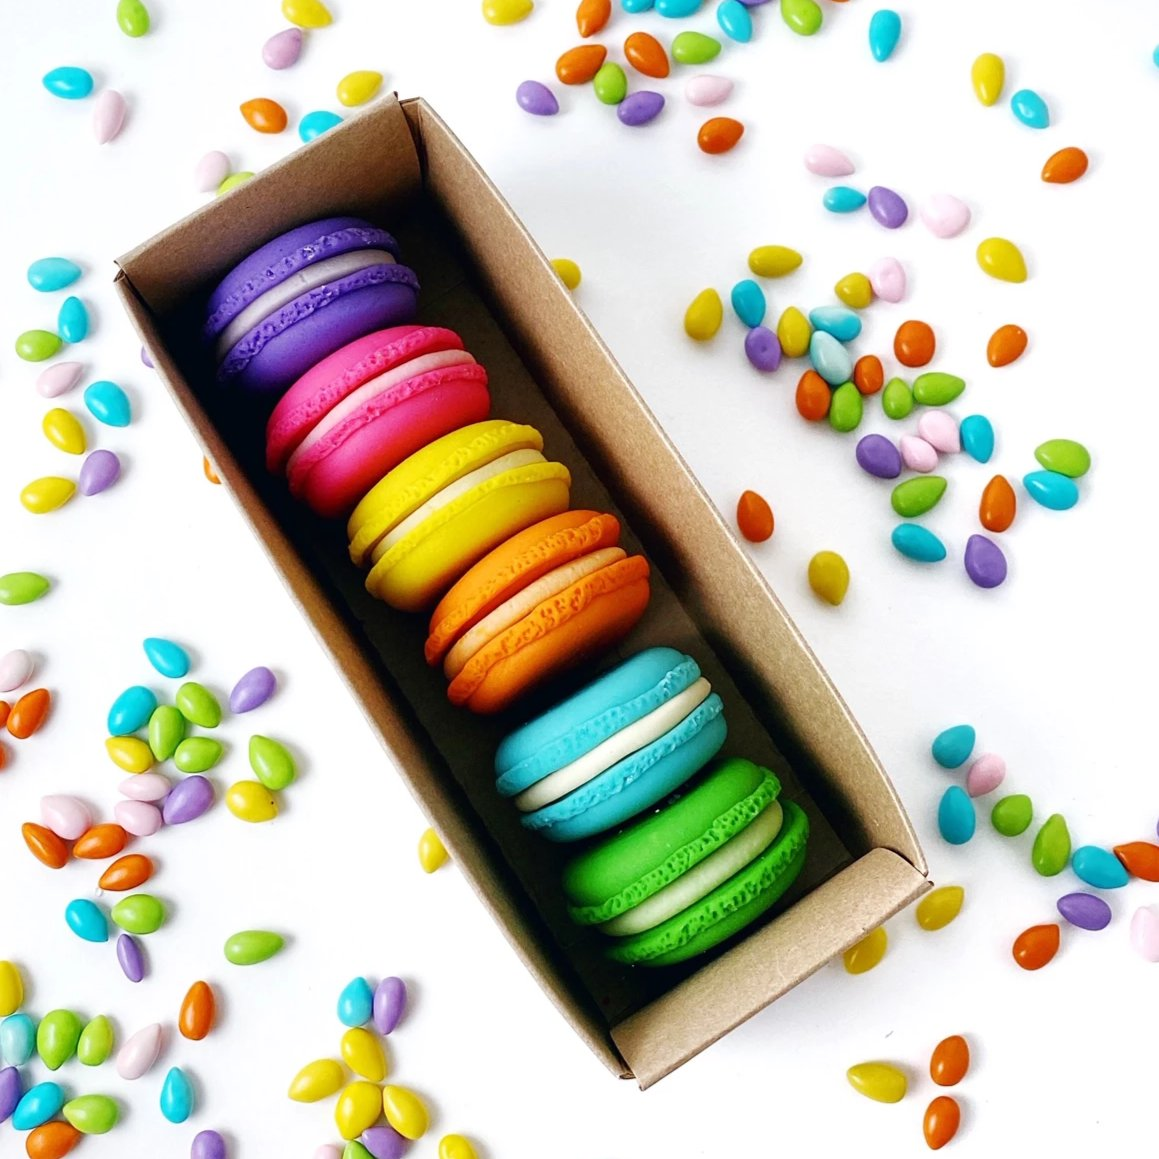 rainbow french macarons marzipan candy sculpture treats in a box